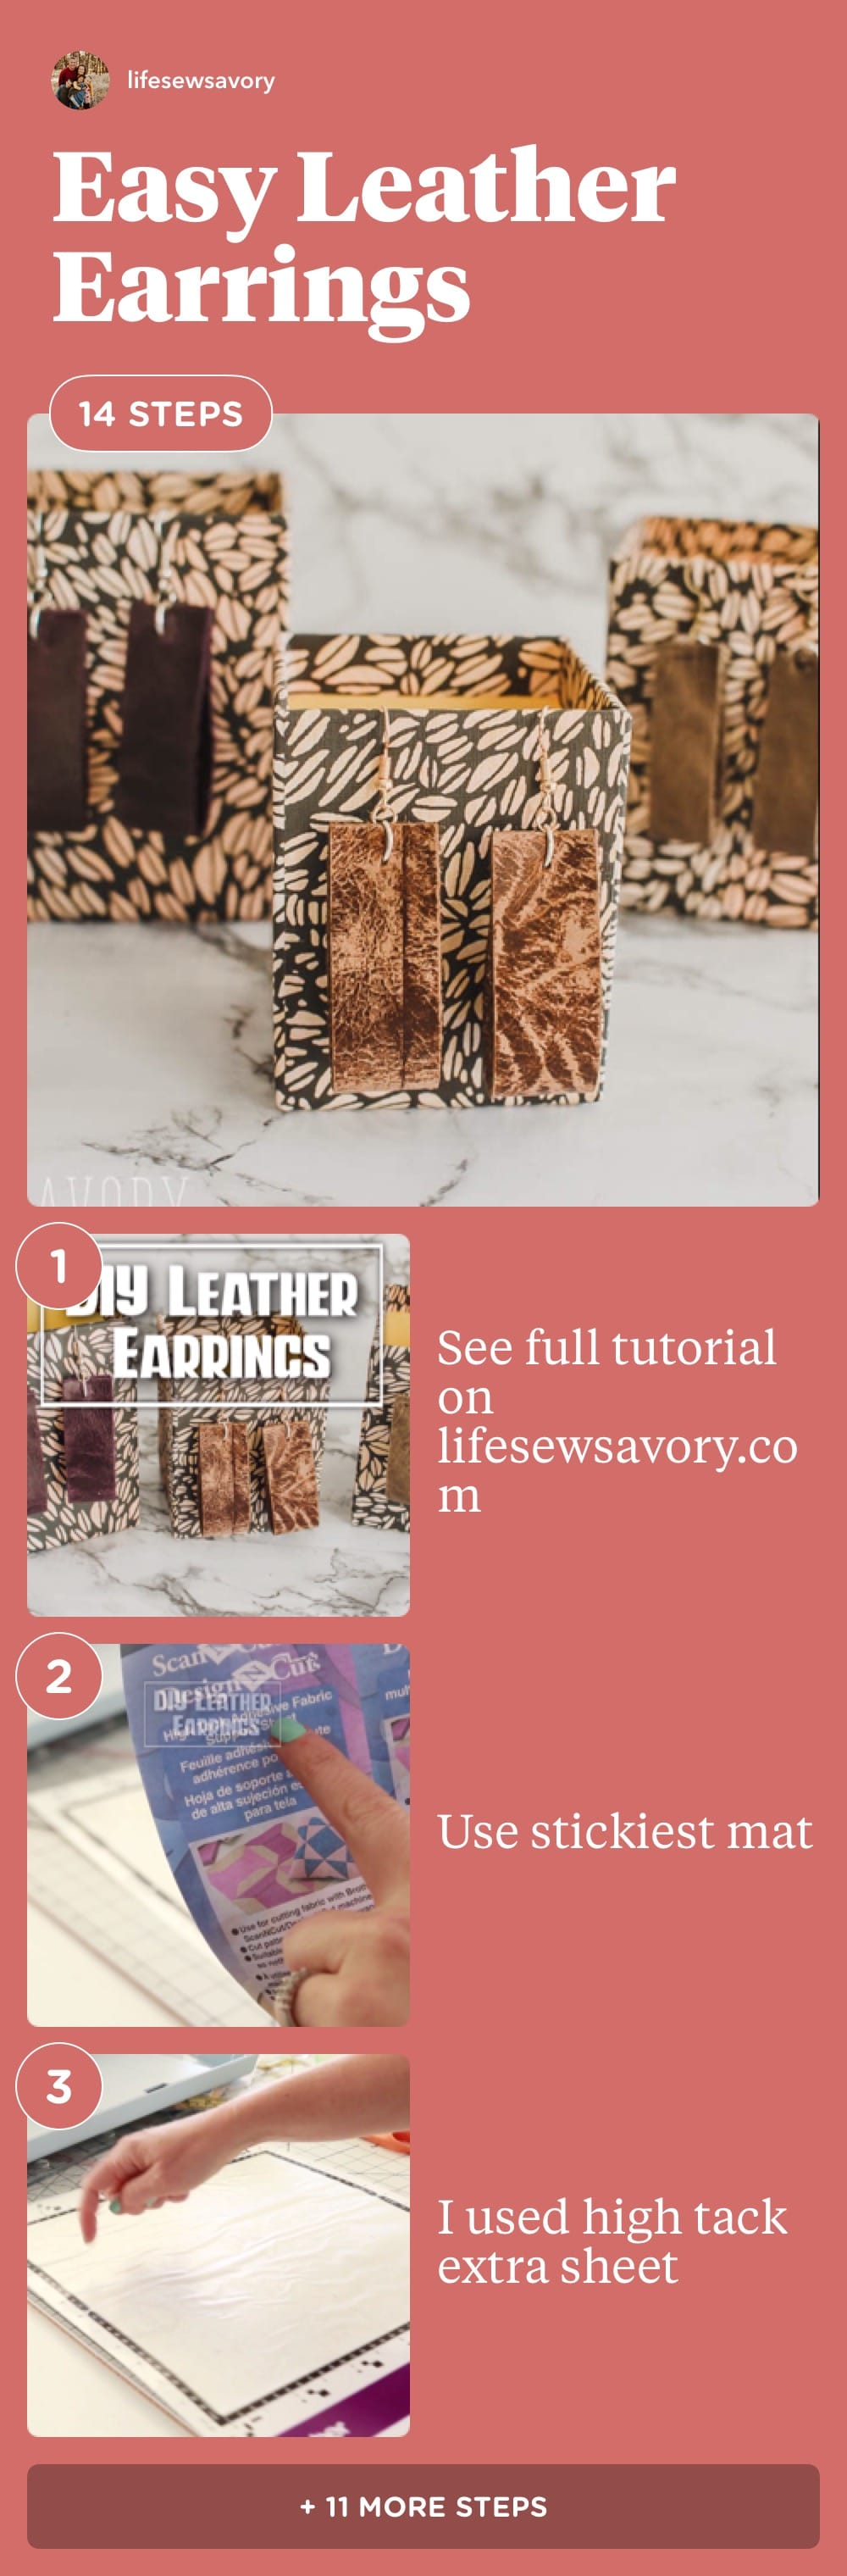 A fun tutorials with easy leather earrings to make. Simple shapes and fun colors make these leather earring designs. DIY leather earrings are fun to make and look great. via @lifesewsavory